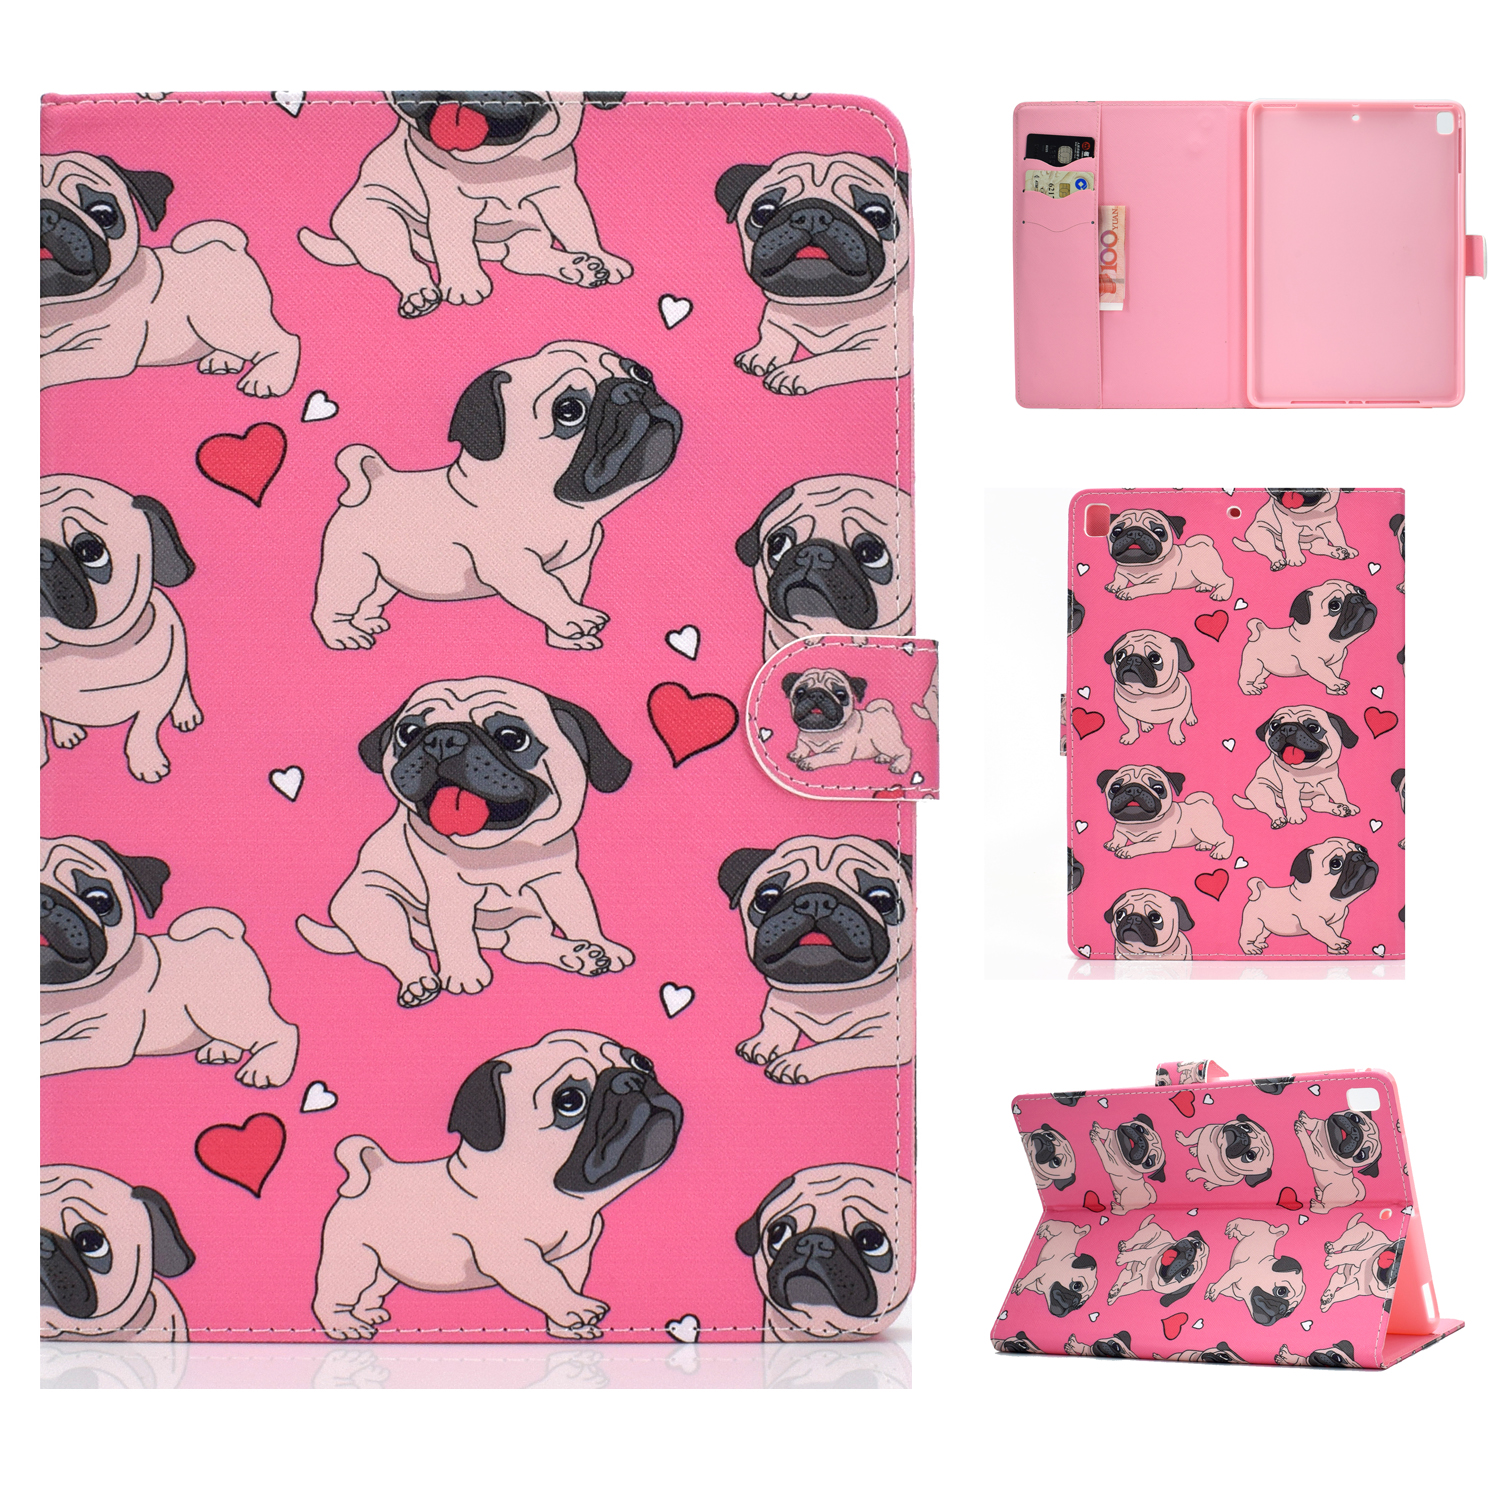 For iPad 5/6/7/8/9-iPad Pro9.7-iPad 9.7 Laptop Protective Case Color Painted Smart Stay PU Cover Caring dog